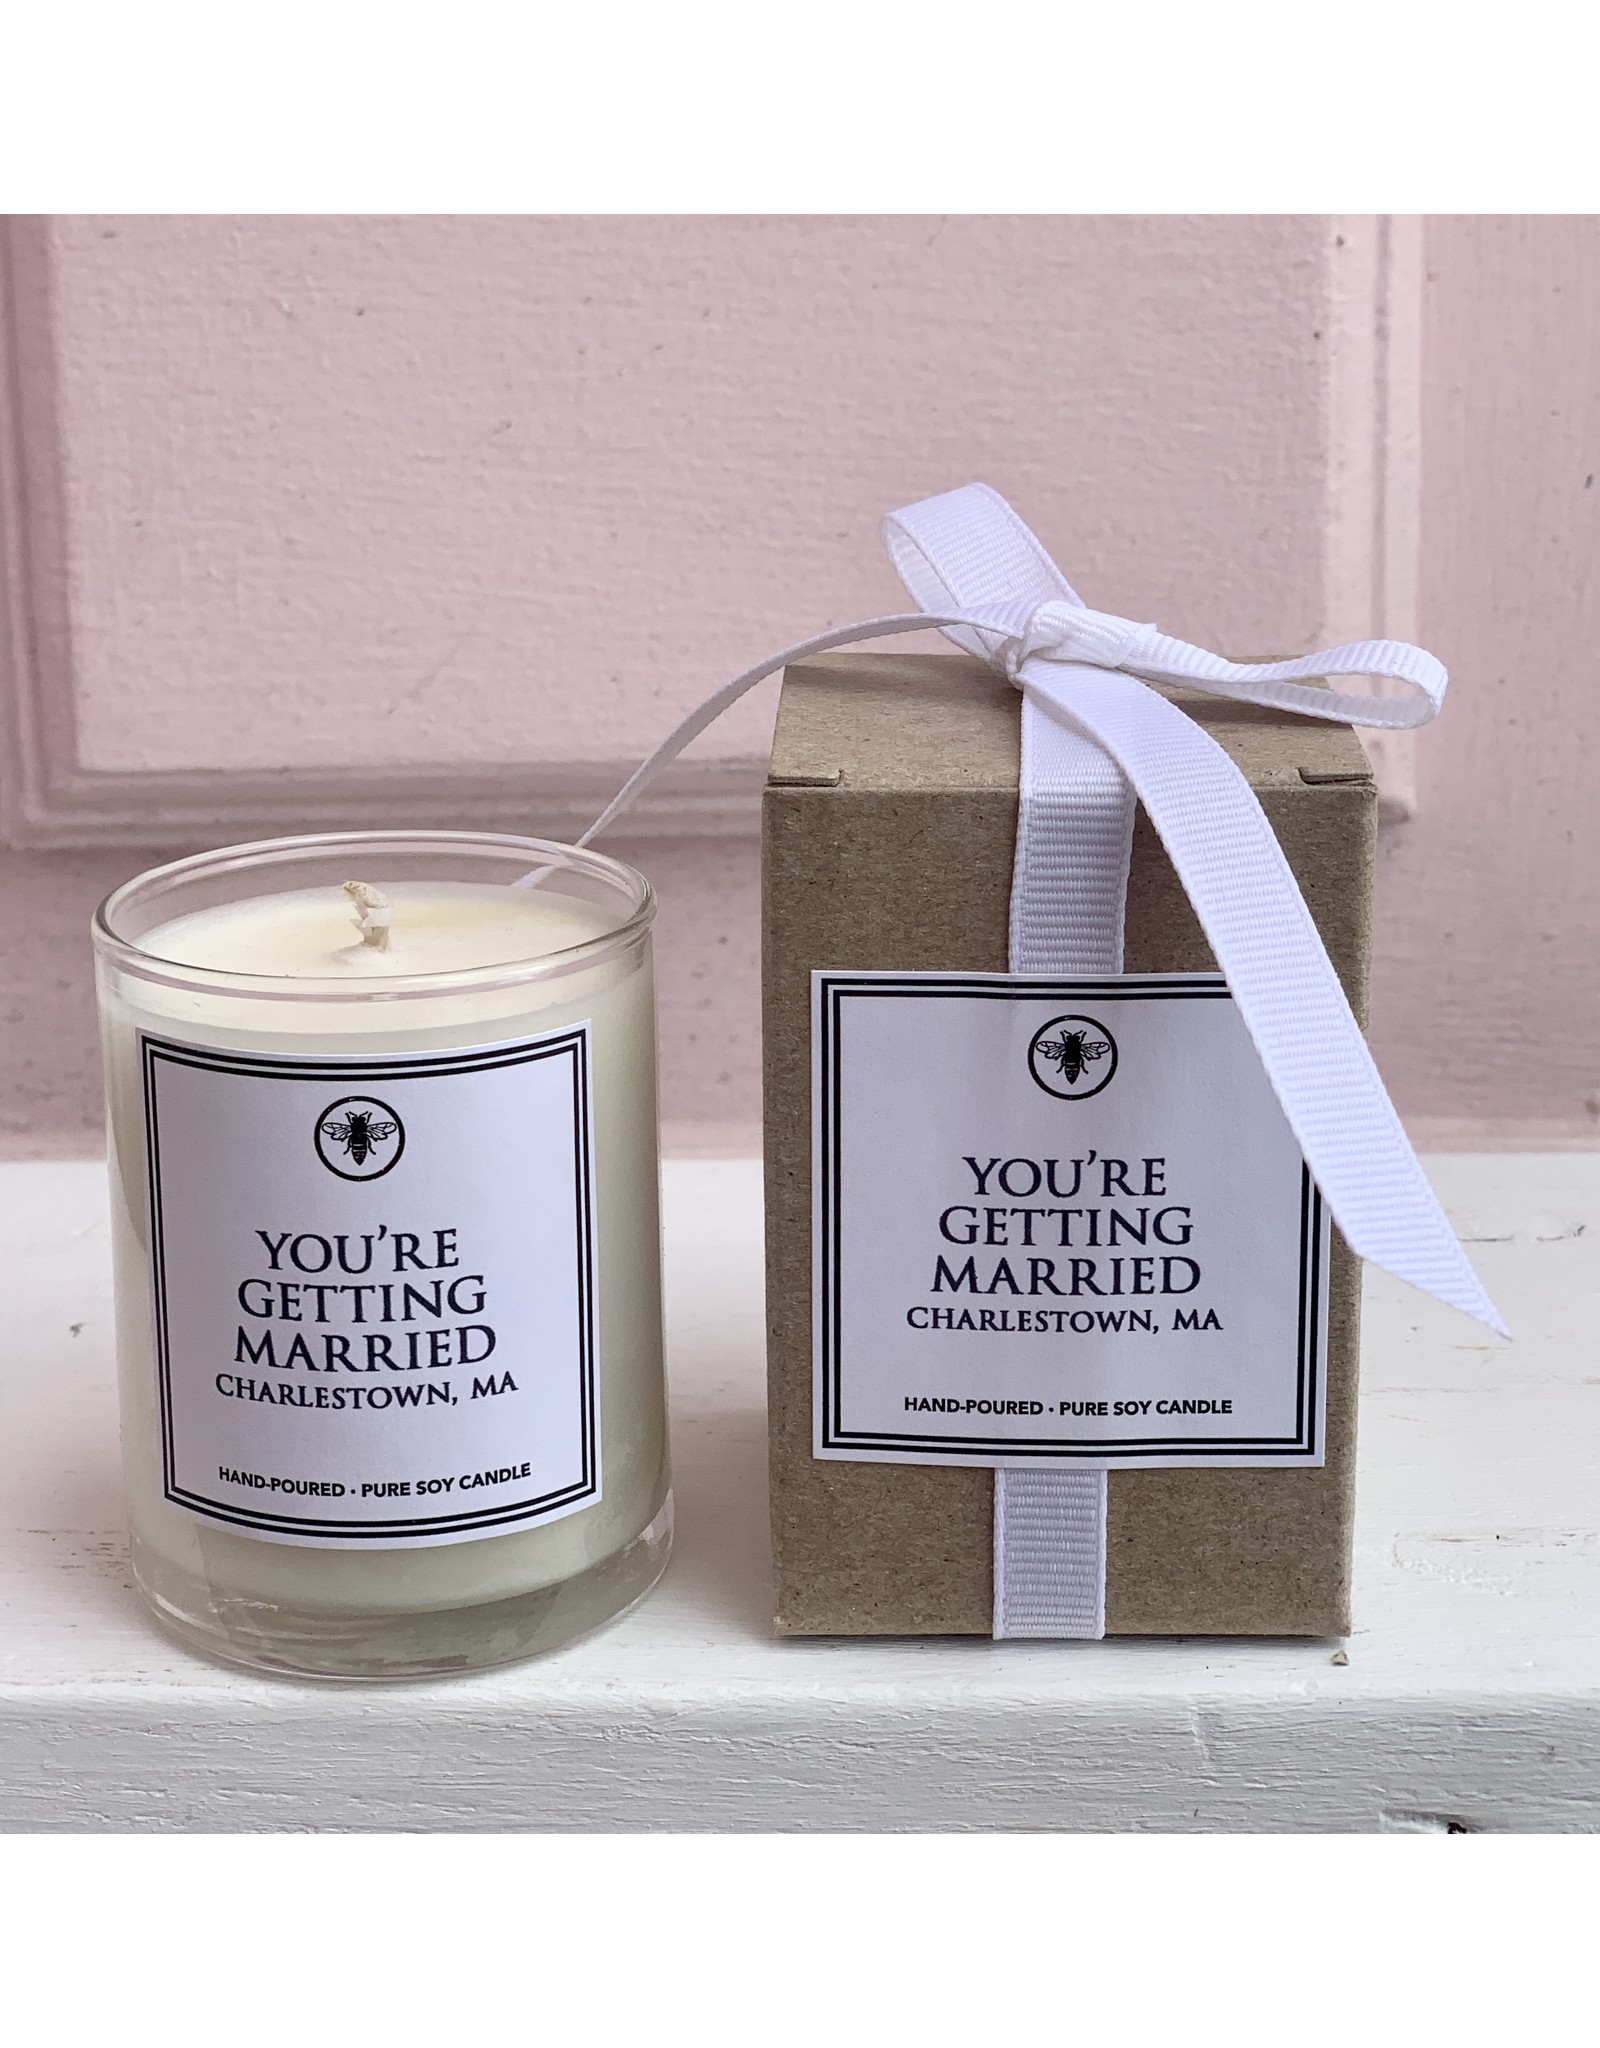 You're Getting Married 3 oz Votive Candle